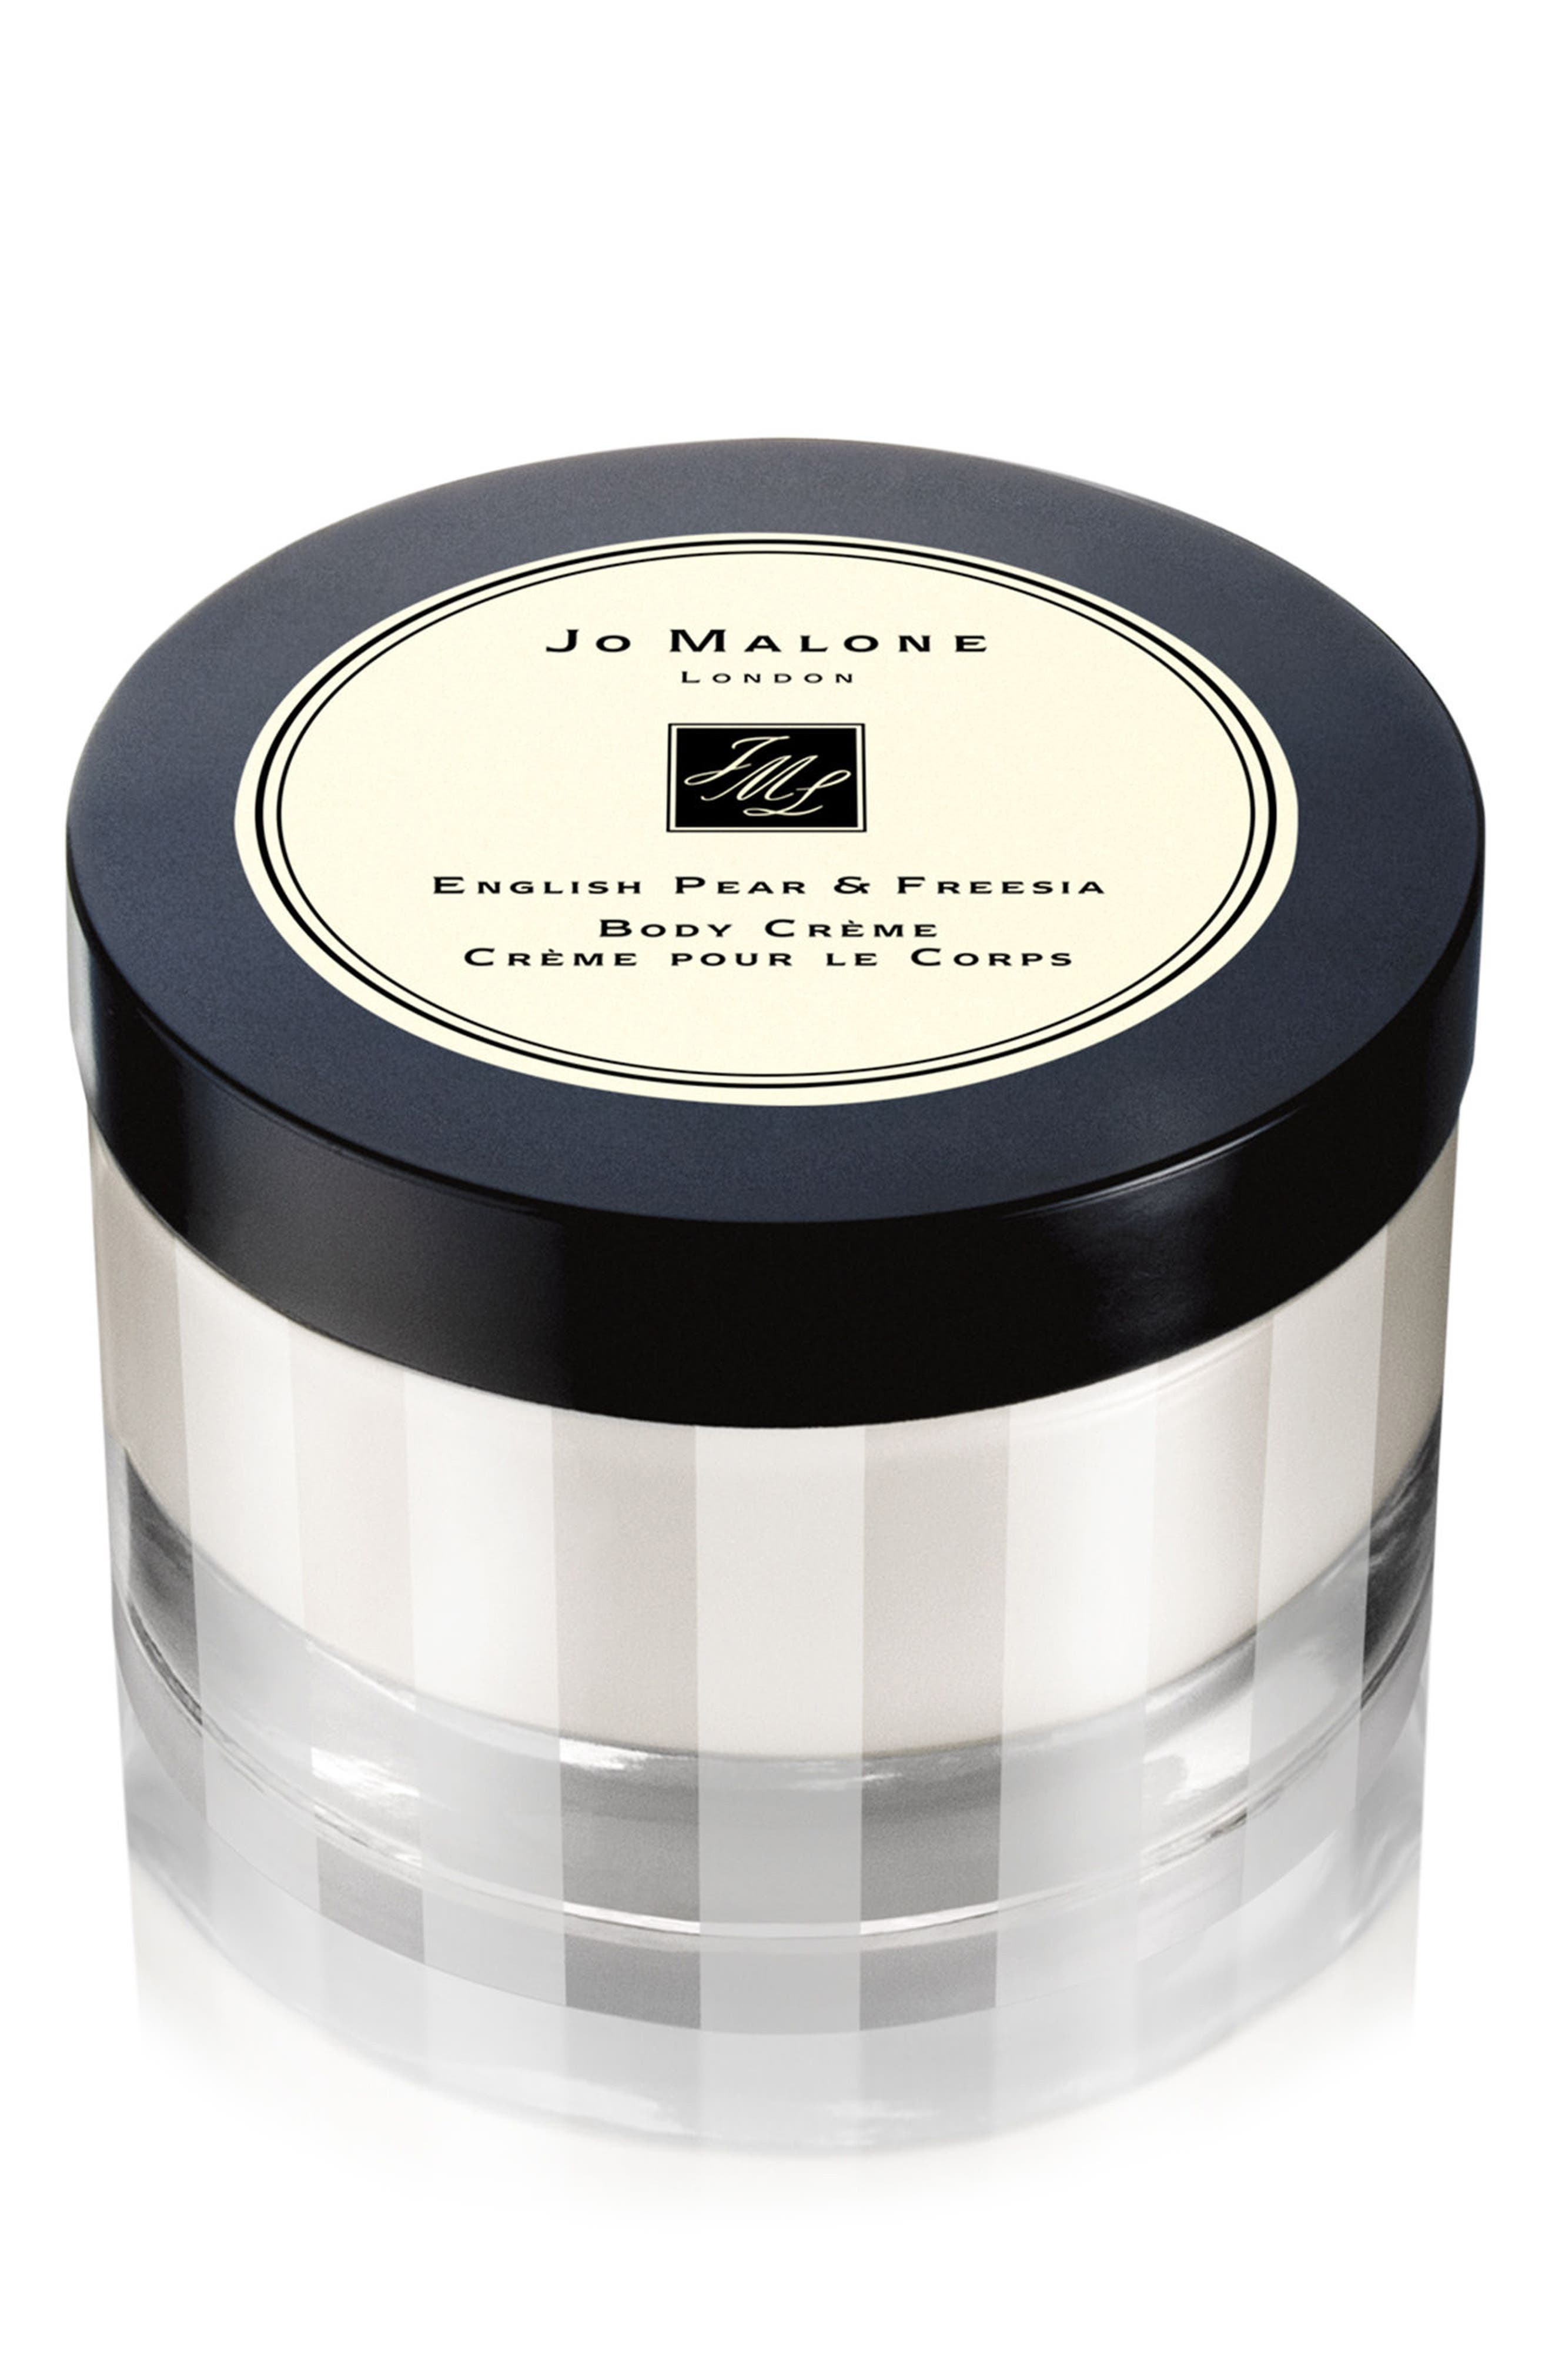 Jo Malone London™ English Pear & Freesia Body Crème